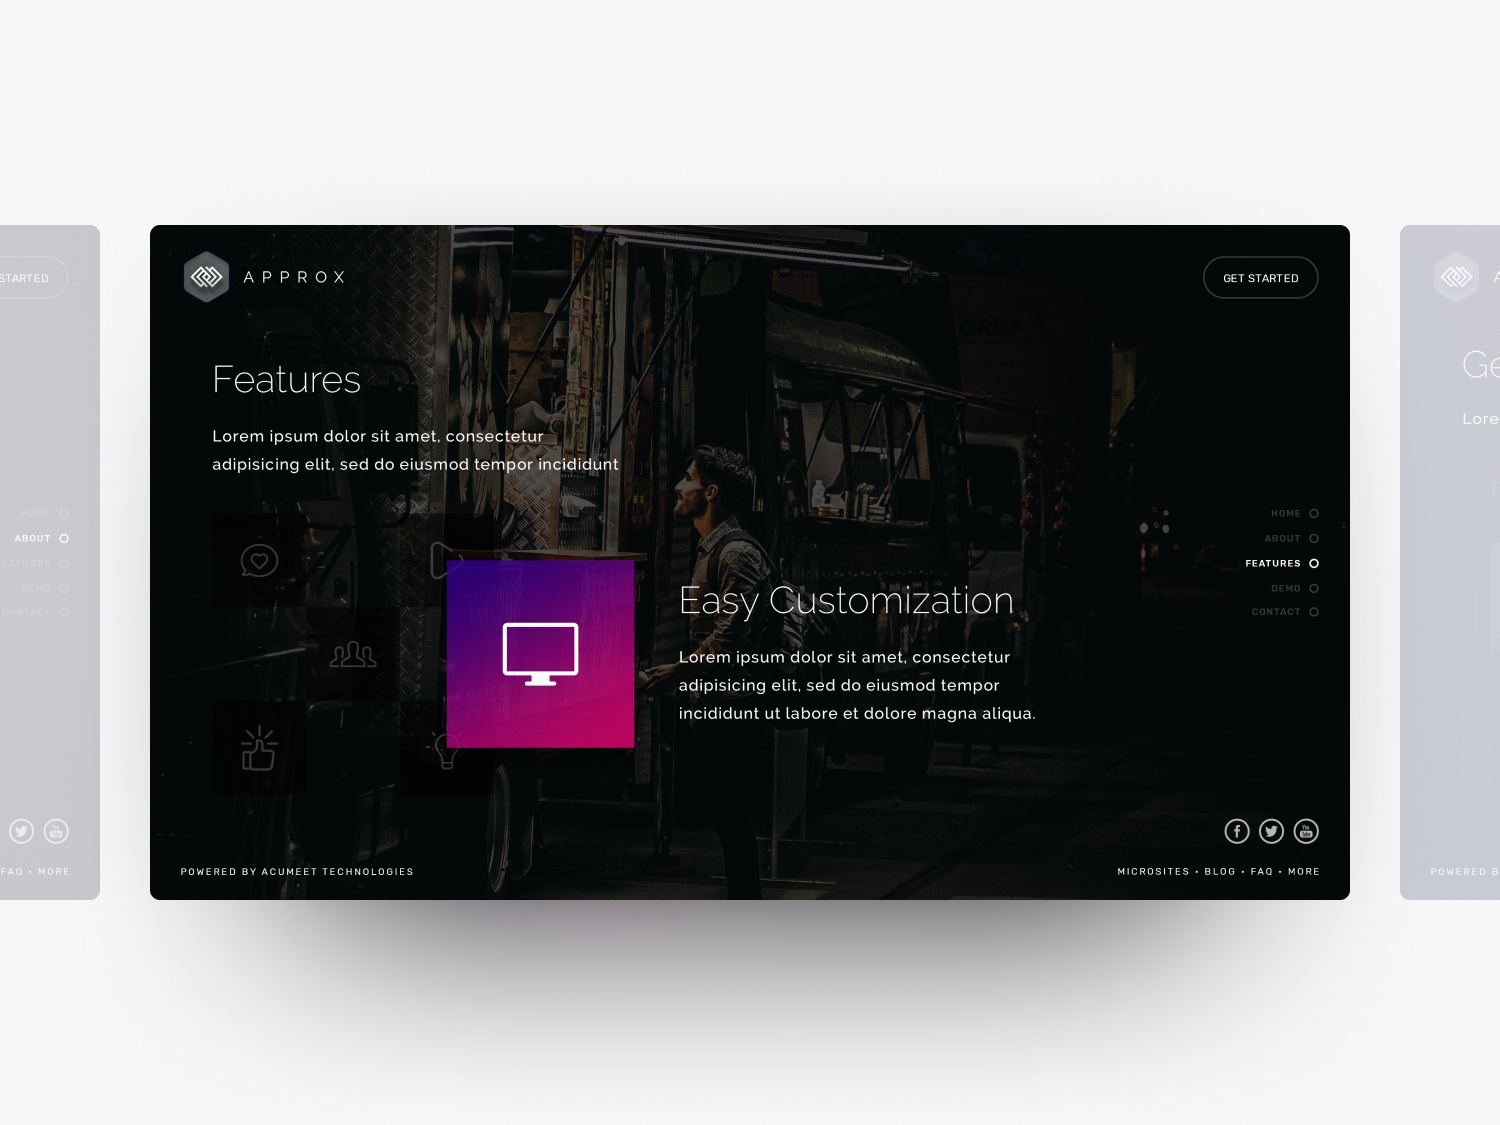 Features Page - Approx web design ux ui user interface user experience design soumeetra apploitte